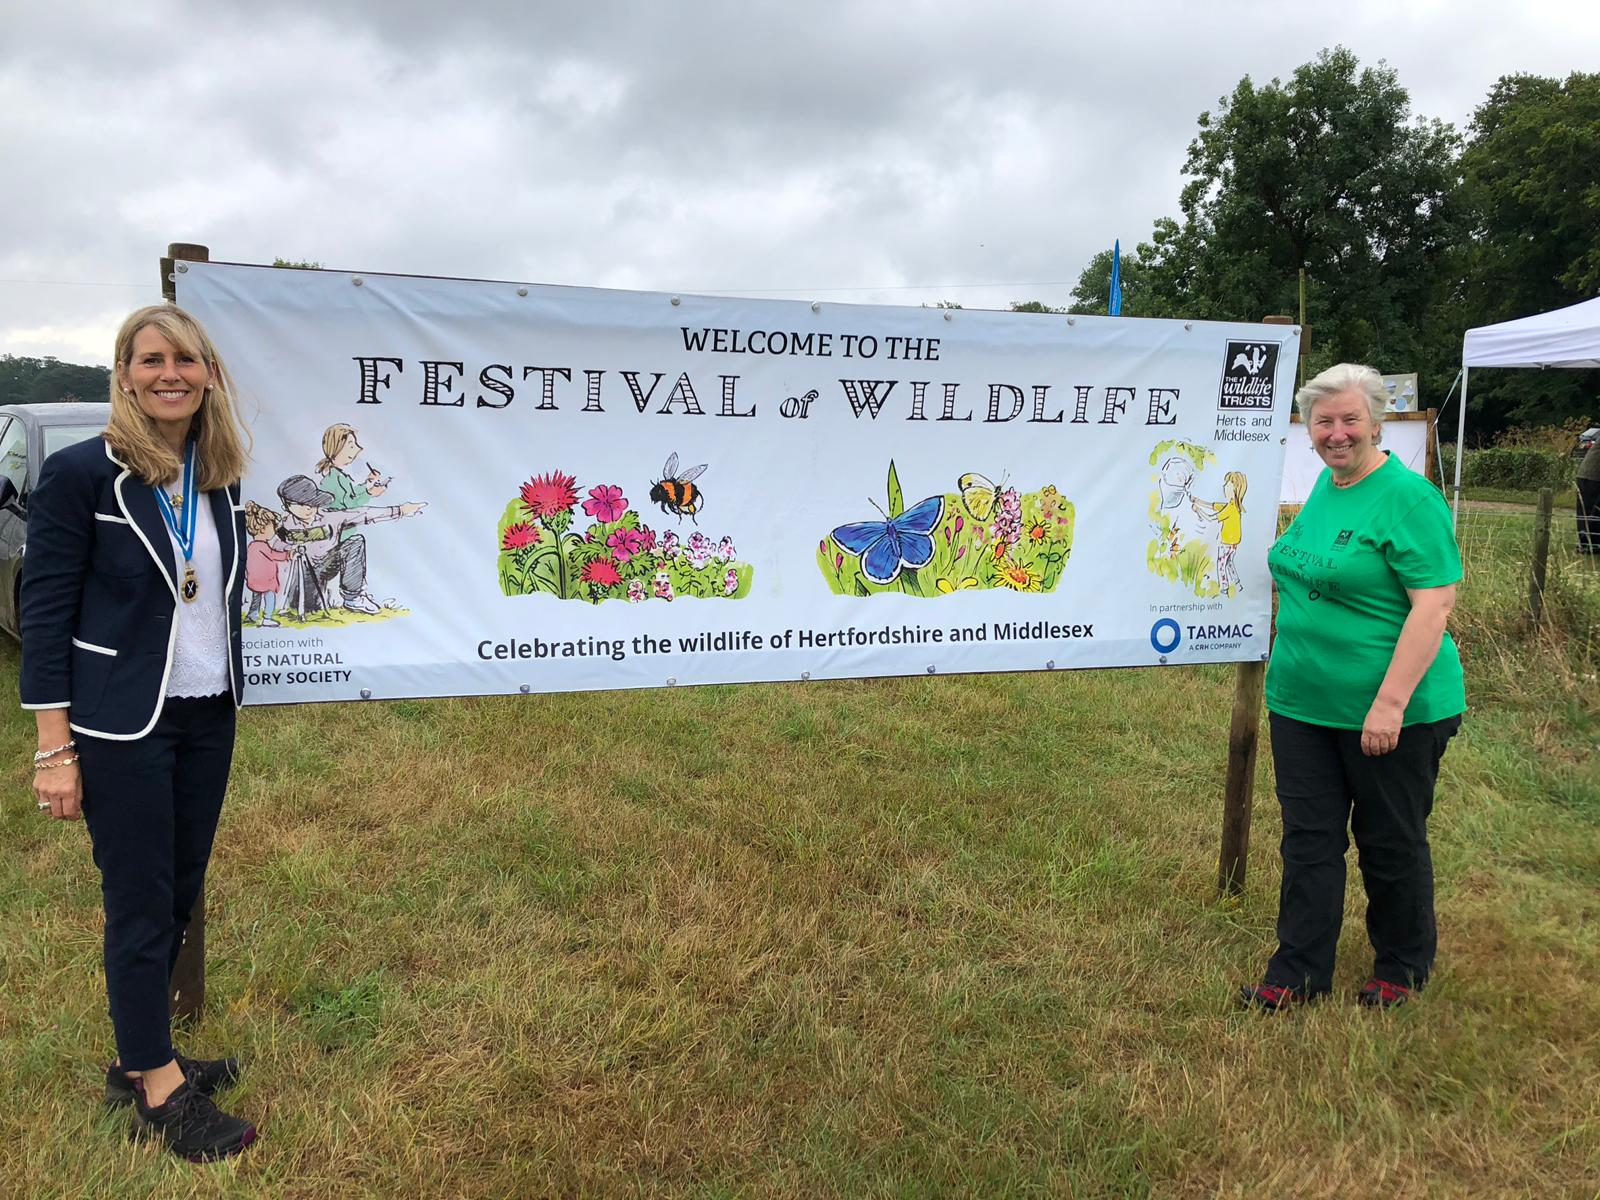 Festival of Wildlife